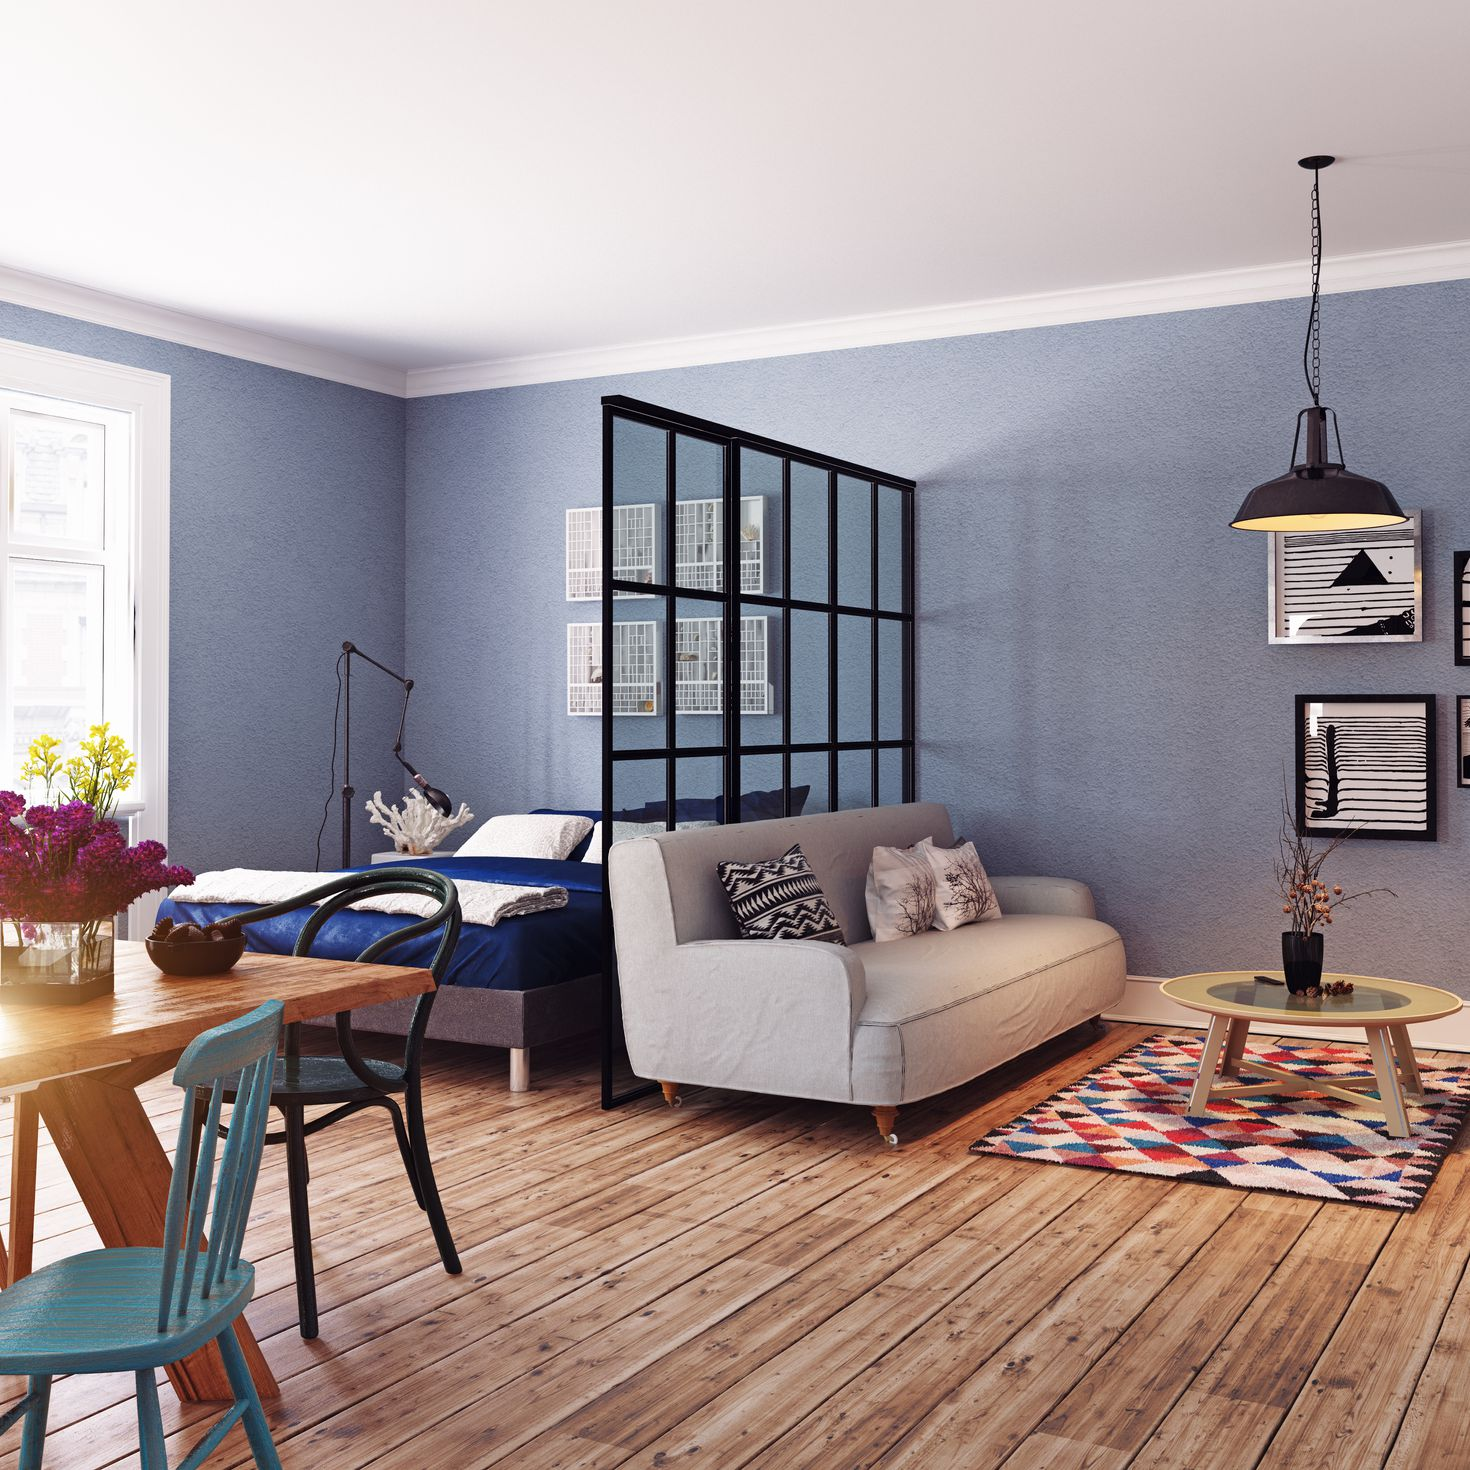 4 Basic Types Of Room Dividers, Living Room Dividers